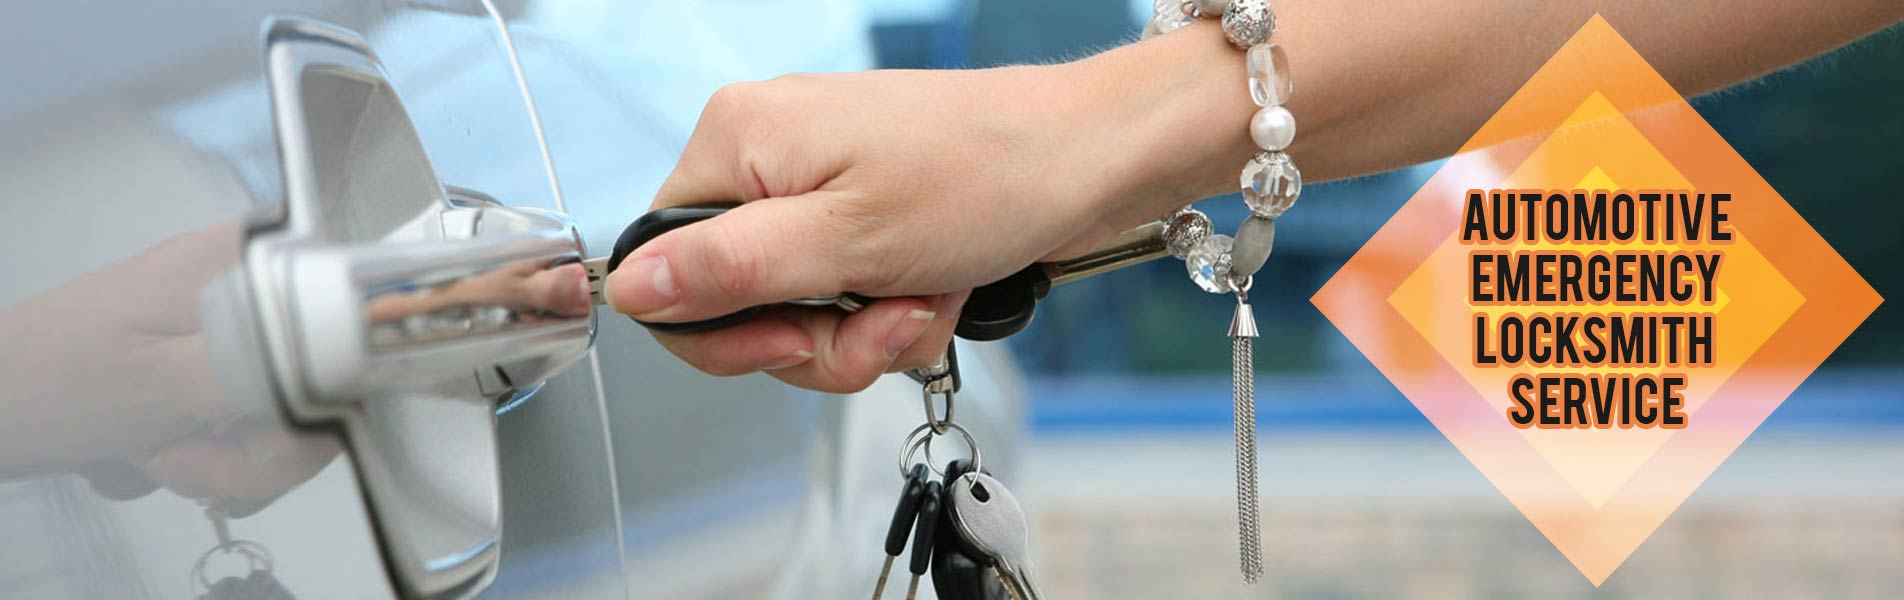 Essington Locksmith Service, Essington, PA 484-363-2042